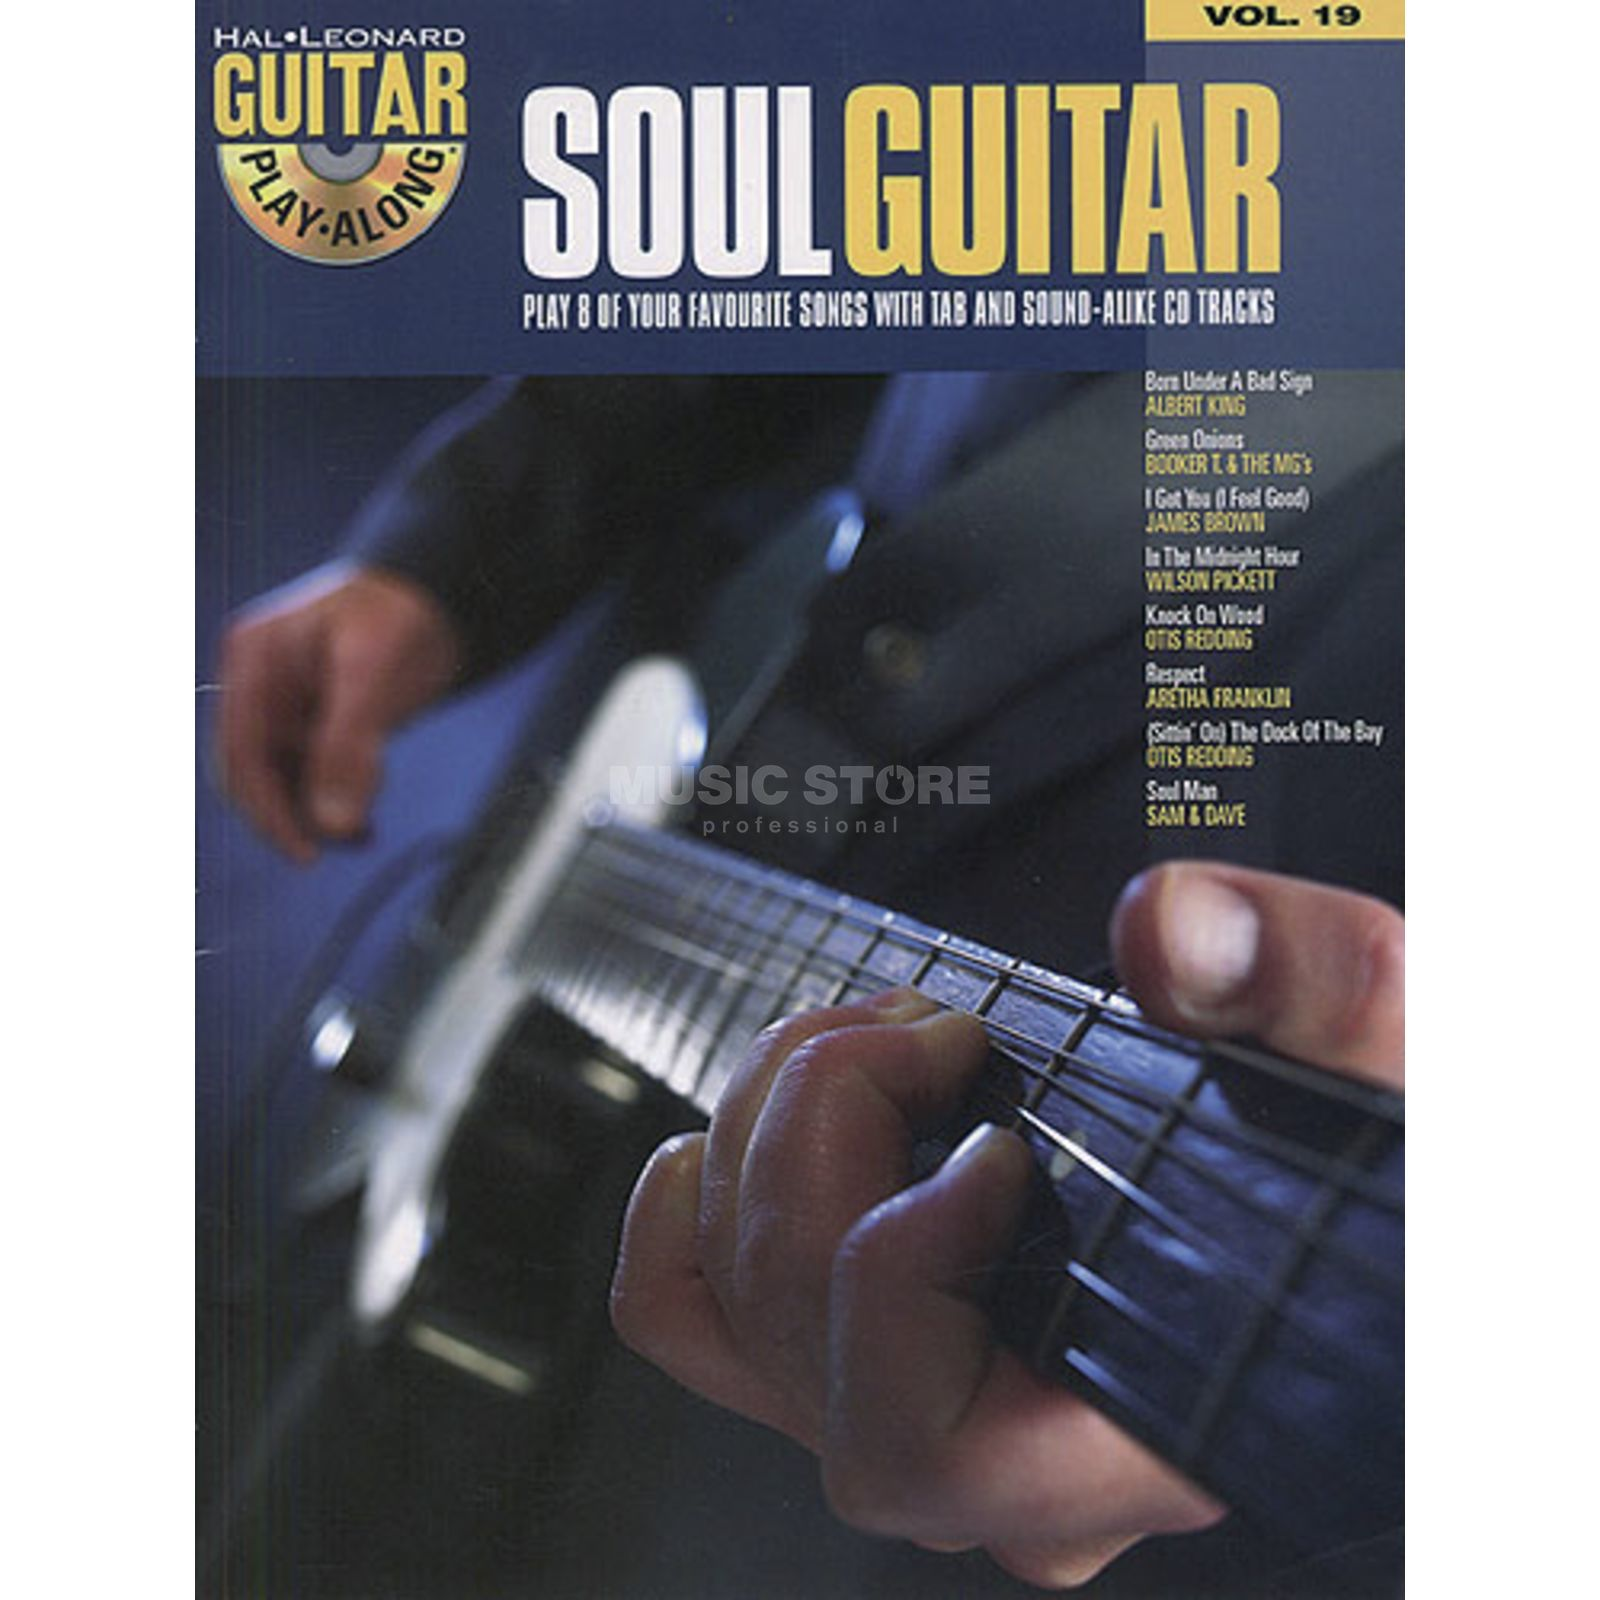 Hal Leonard Guitar Play-Along: Soul Guitar Vol. 19, TAB und CD Produktbild